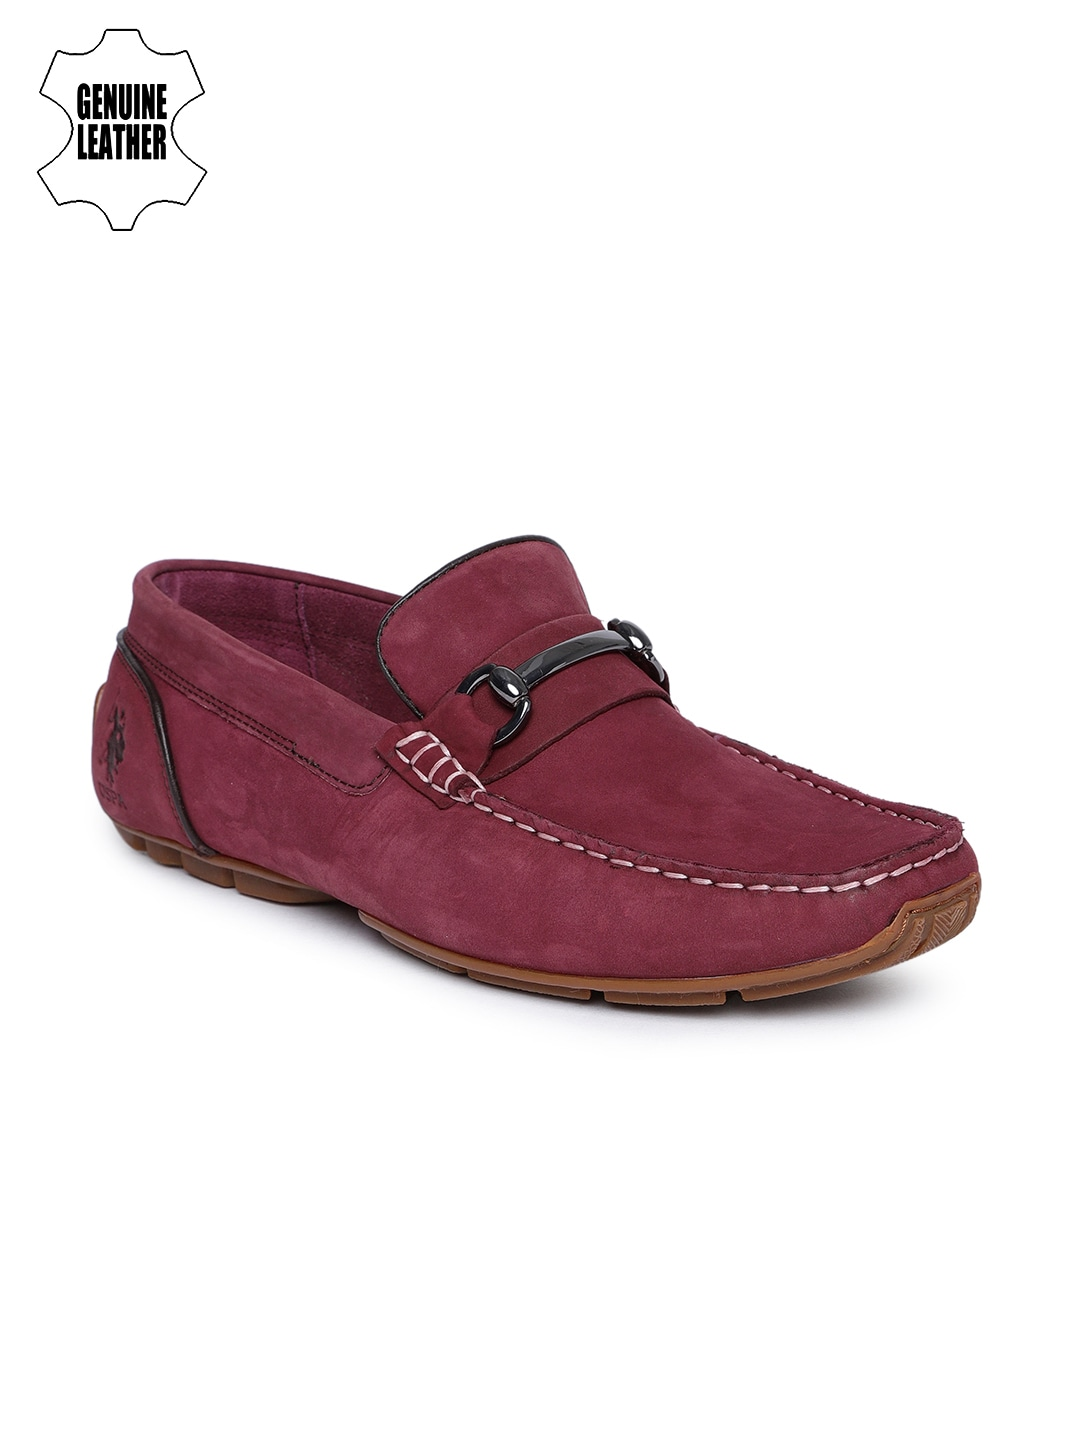 603632e3df5 Loafer Shoes - Buy Latest Loafer Shoes For Men